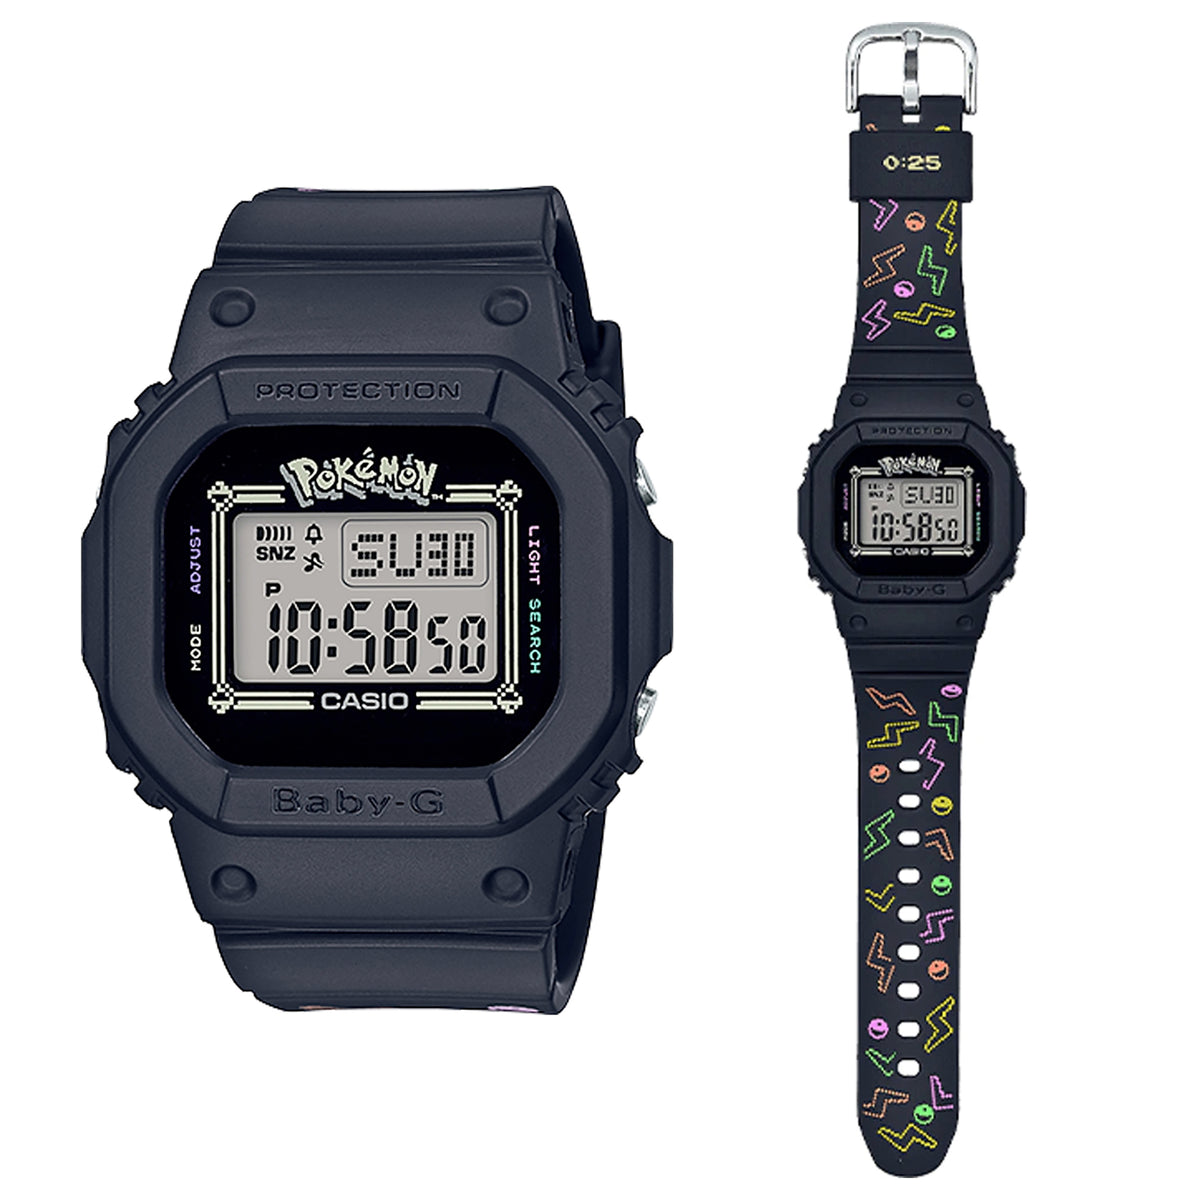 G-Shock: Pokemon Baby-G Watch - Black (BGD560PKC-1)